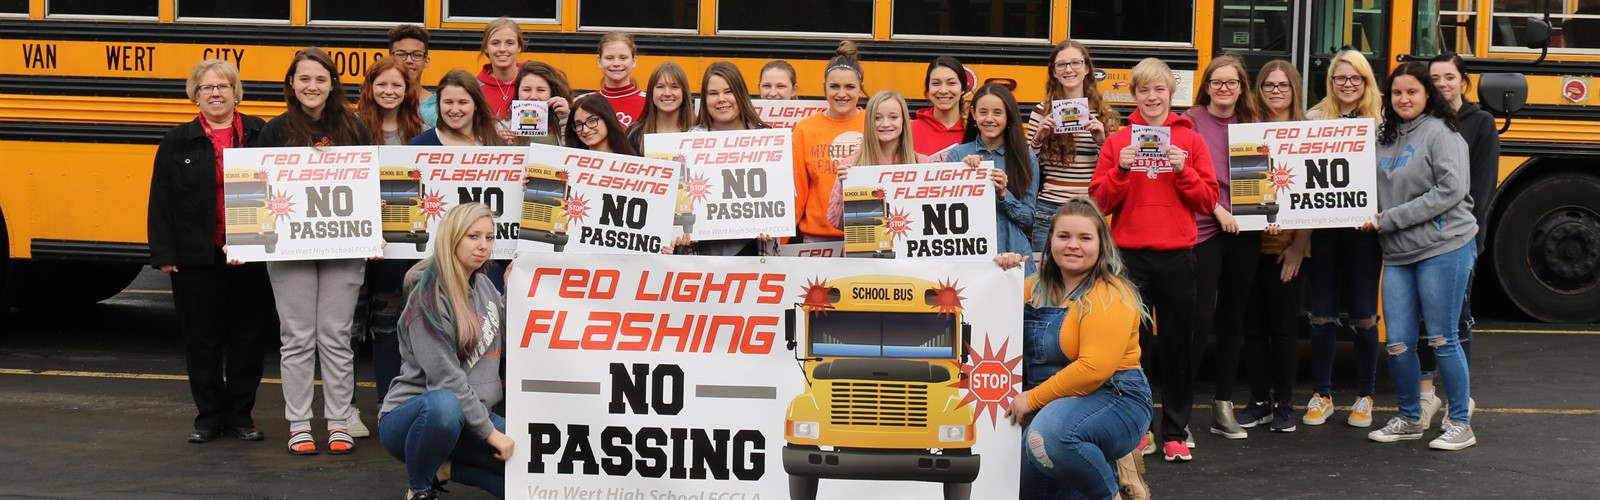 "FCCLA students pose beside school buses holding the signage they created for their bus safety campaign ""Red Lights Flashing No Passing"""